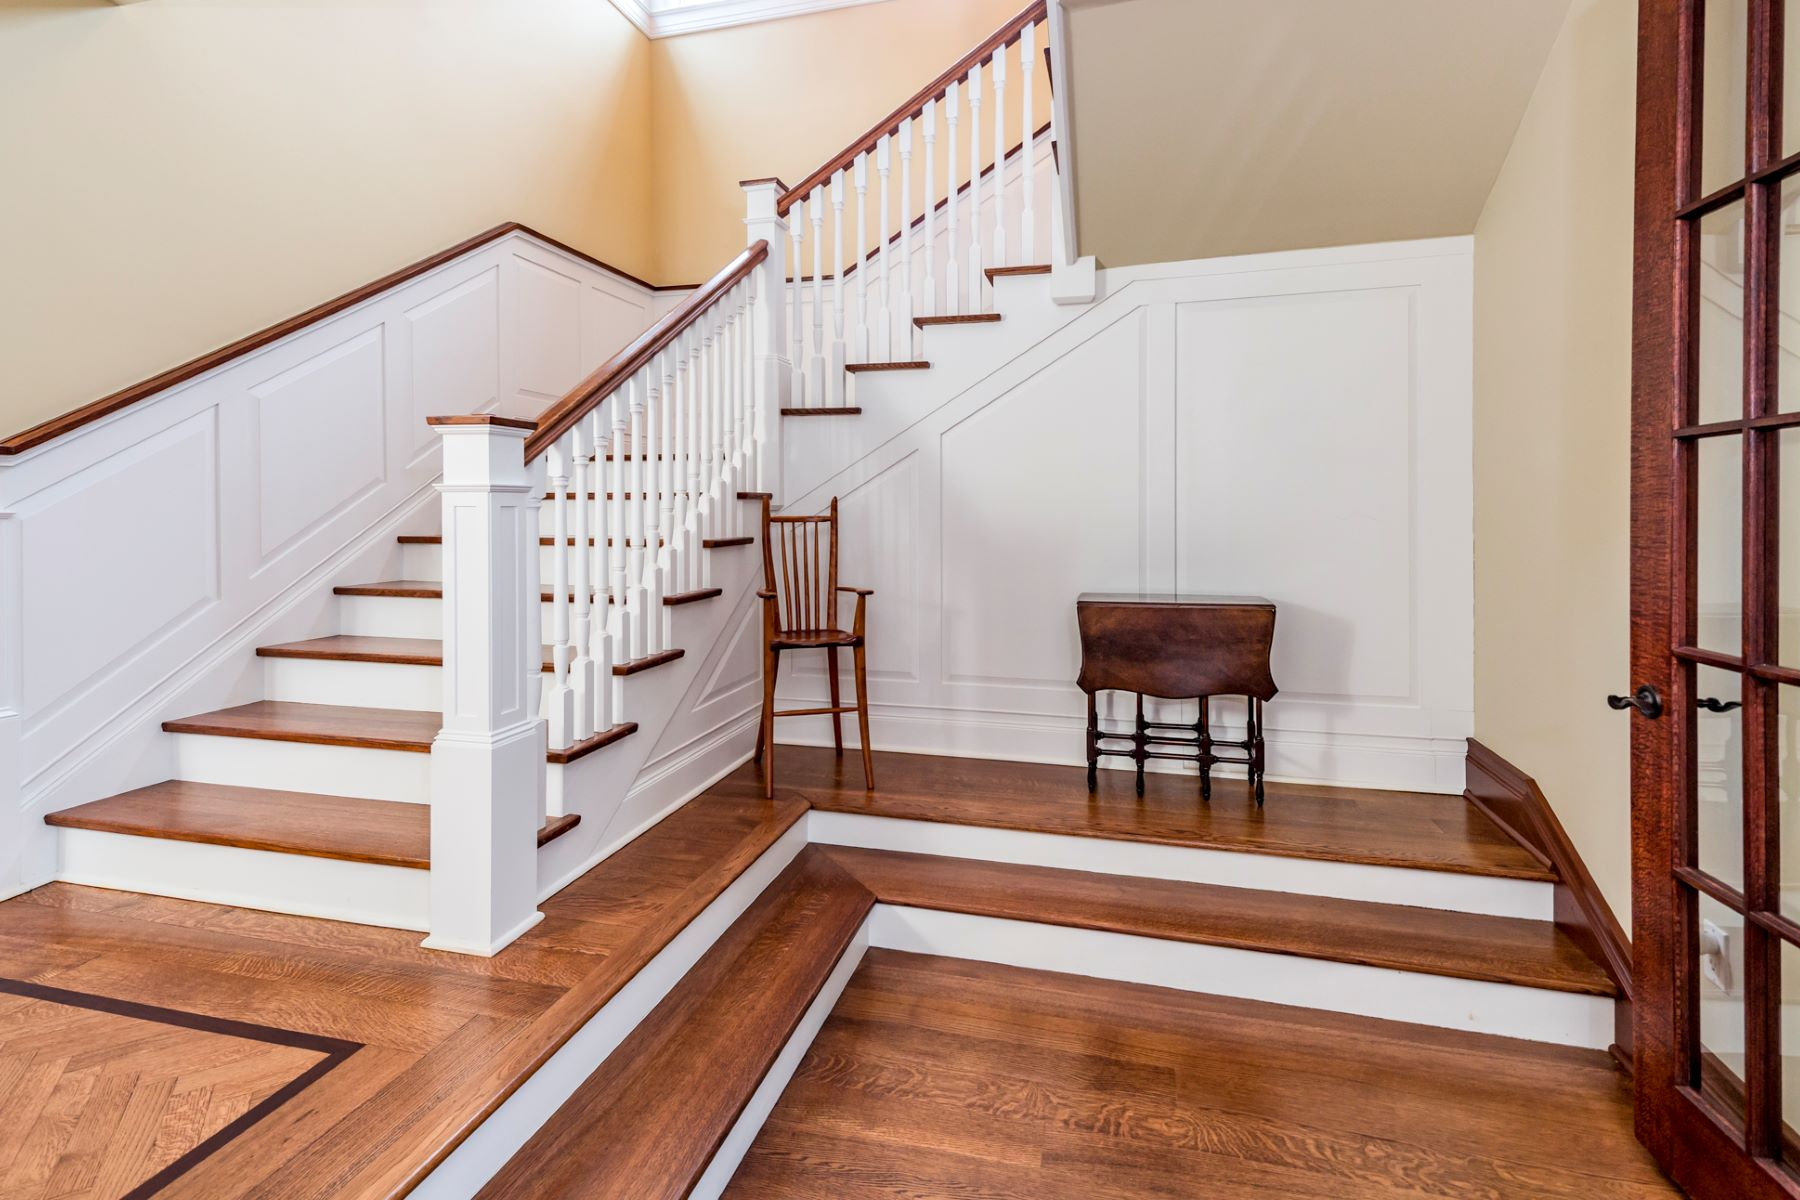 Additional photo for property listing at A Modern & Luxuriant Take on the Classic Home 419 Great Road, Princeton, Νιου Τζερσεϋ 08540 Ηνωμένες Πολιτείες